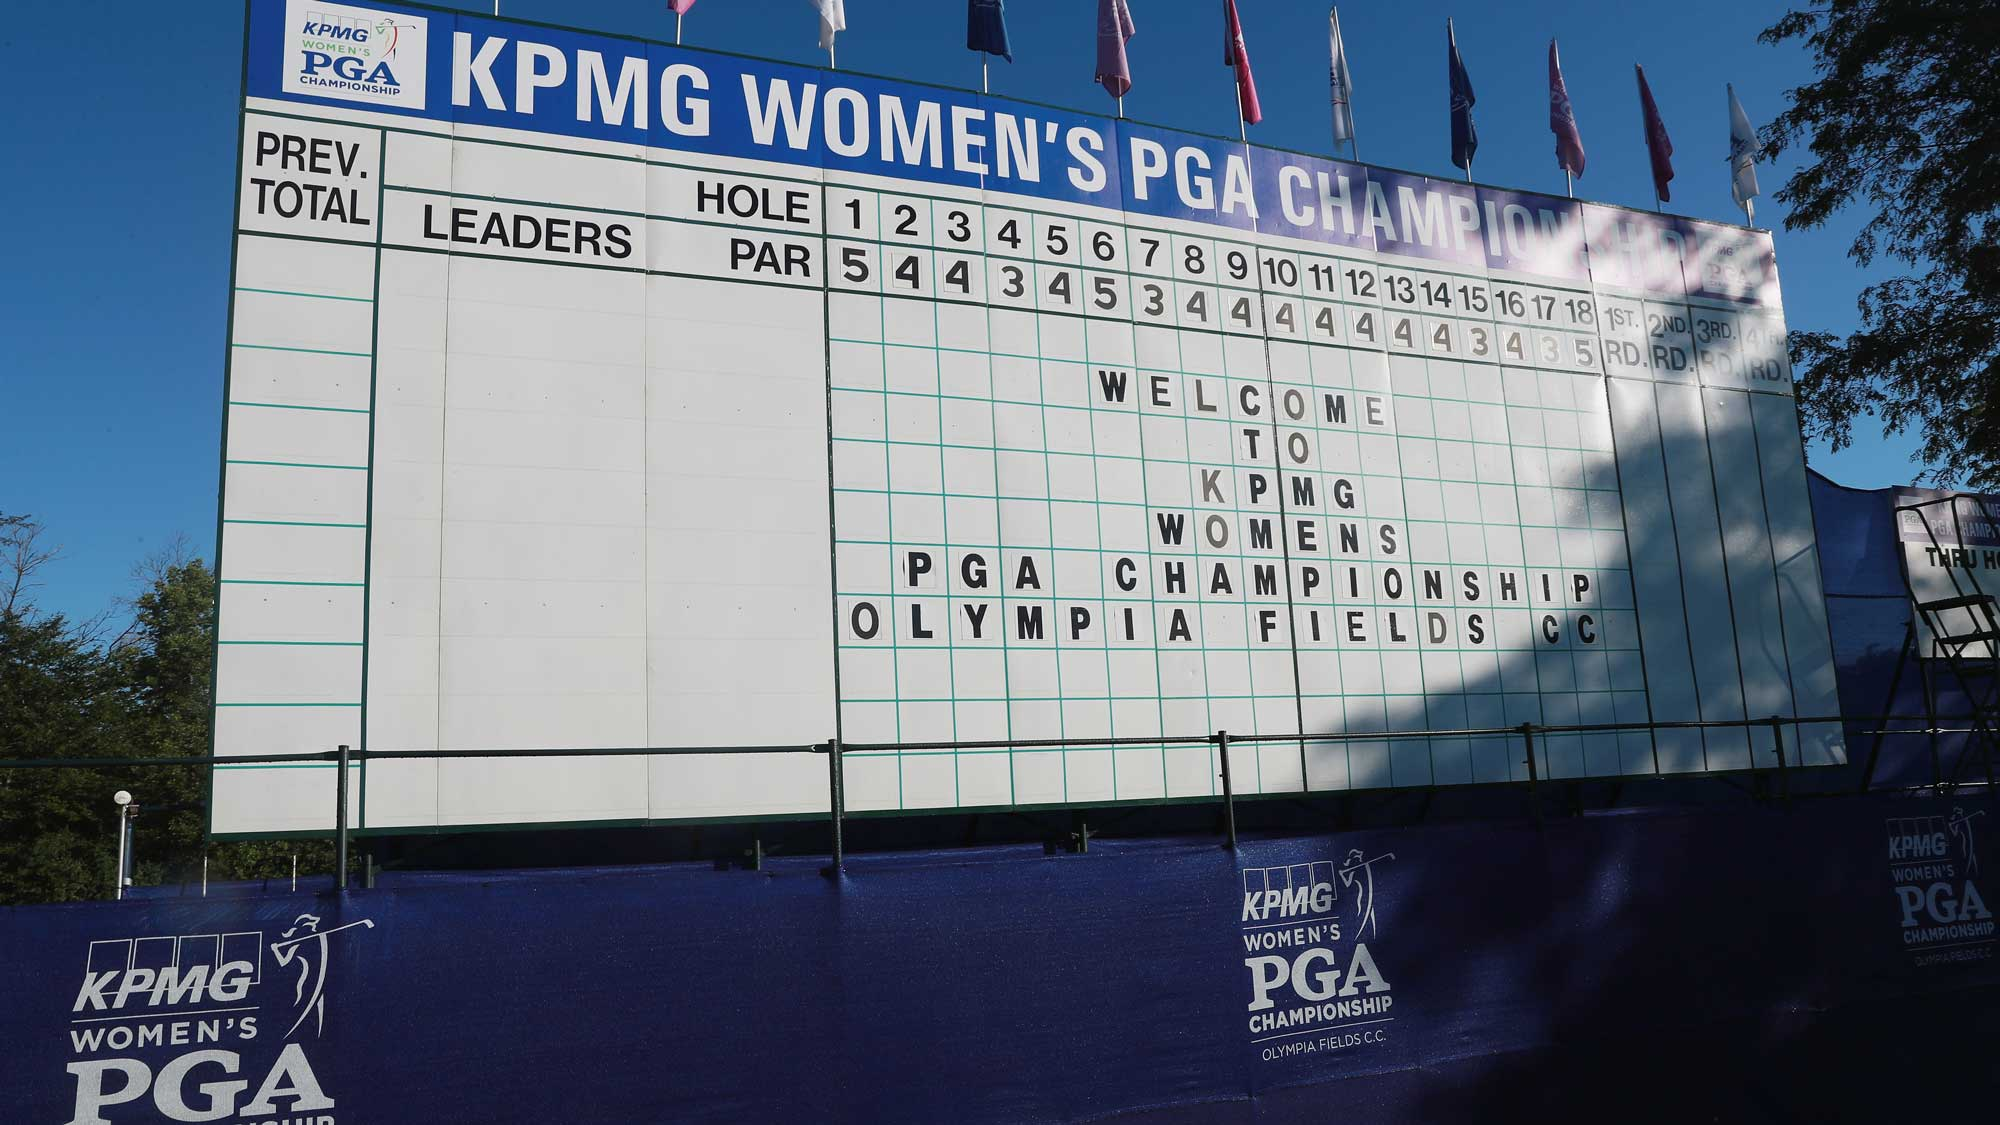 A message is displayed on the main leaderboard on the 18th hole during the pro-am prior to the start of the 2017 KPMG Women's PGA Championship